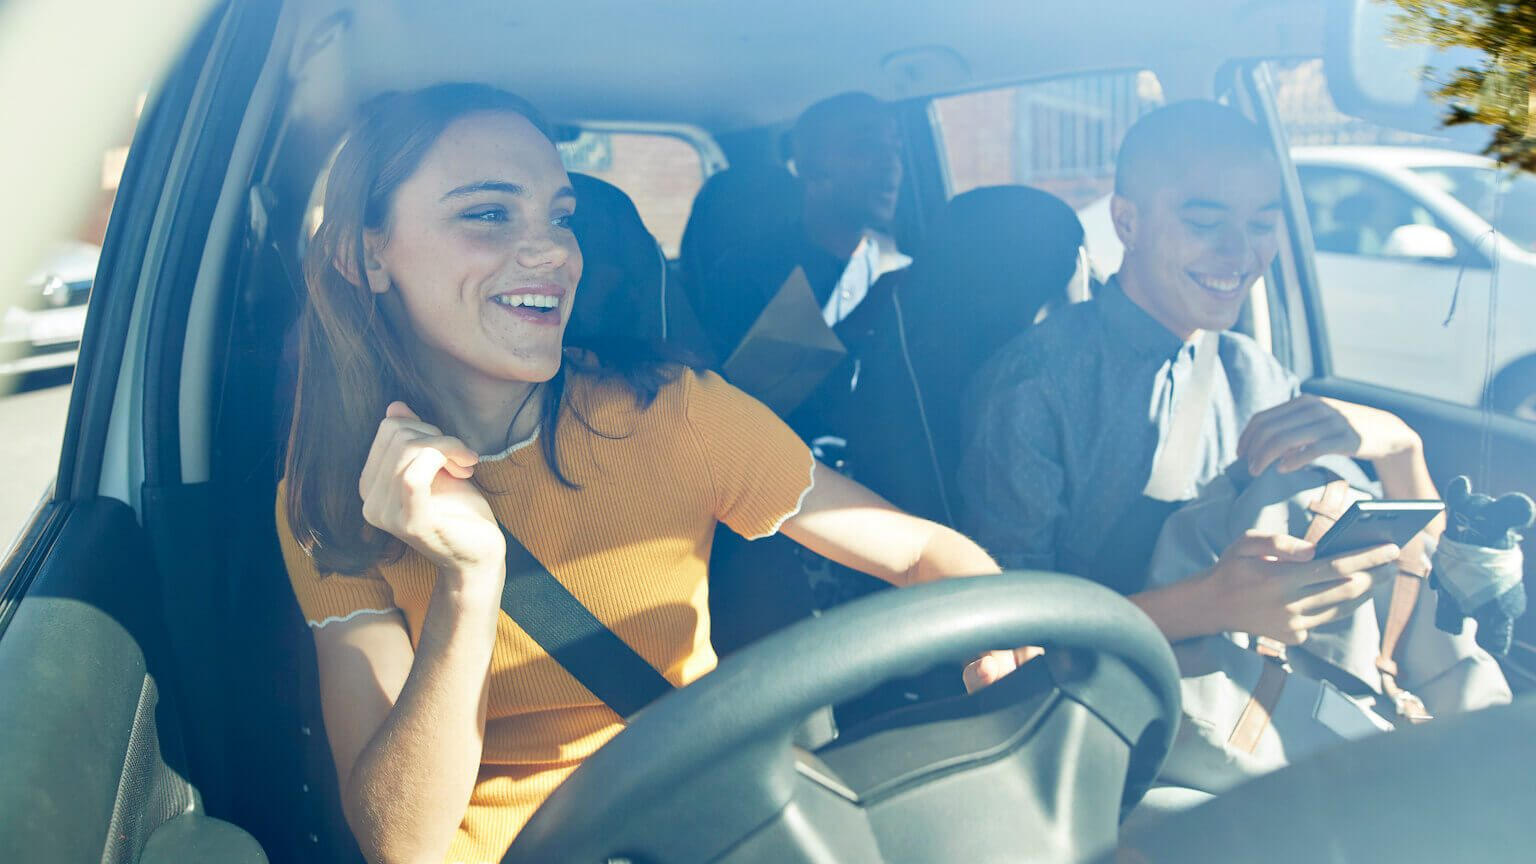 Young woman smiling and driving the car with her friends